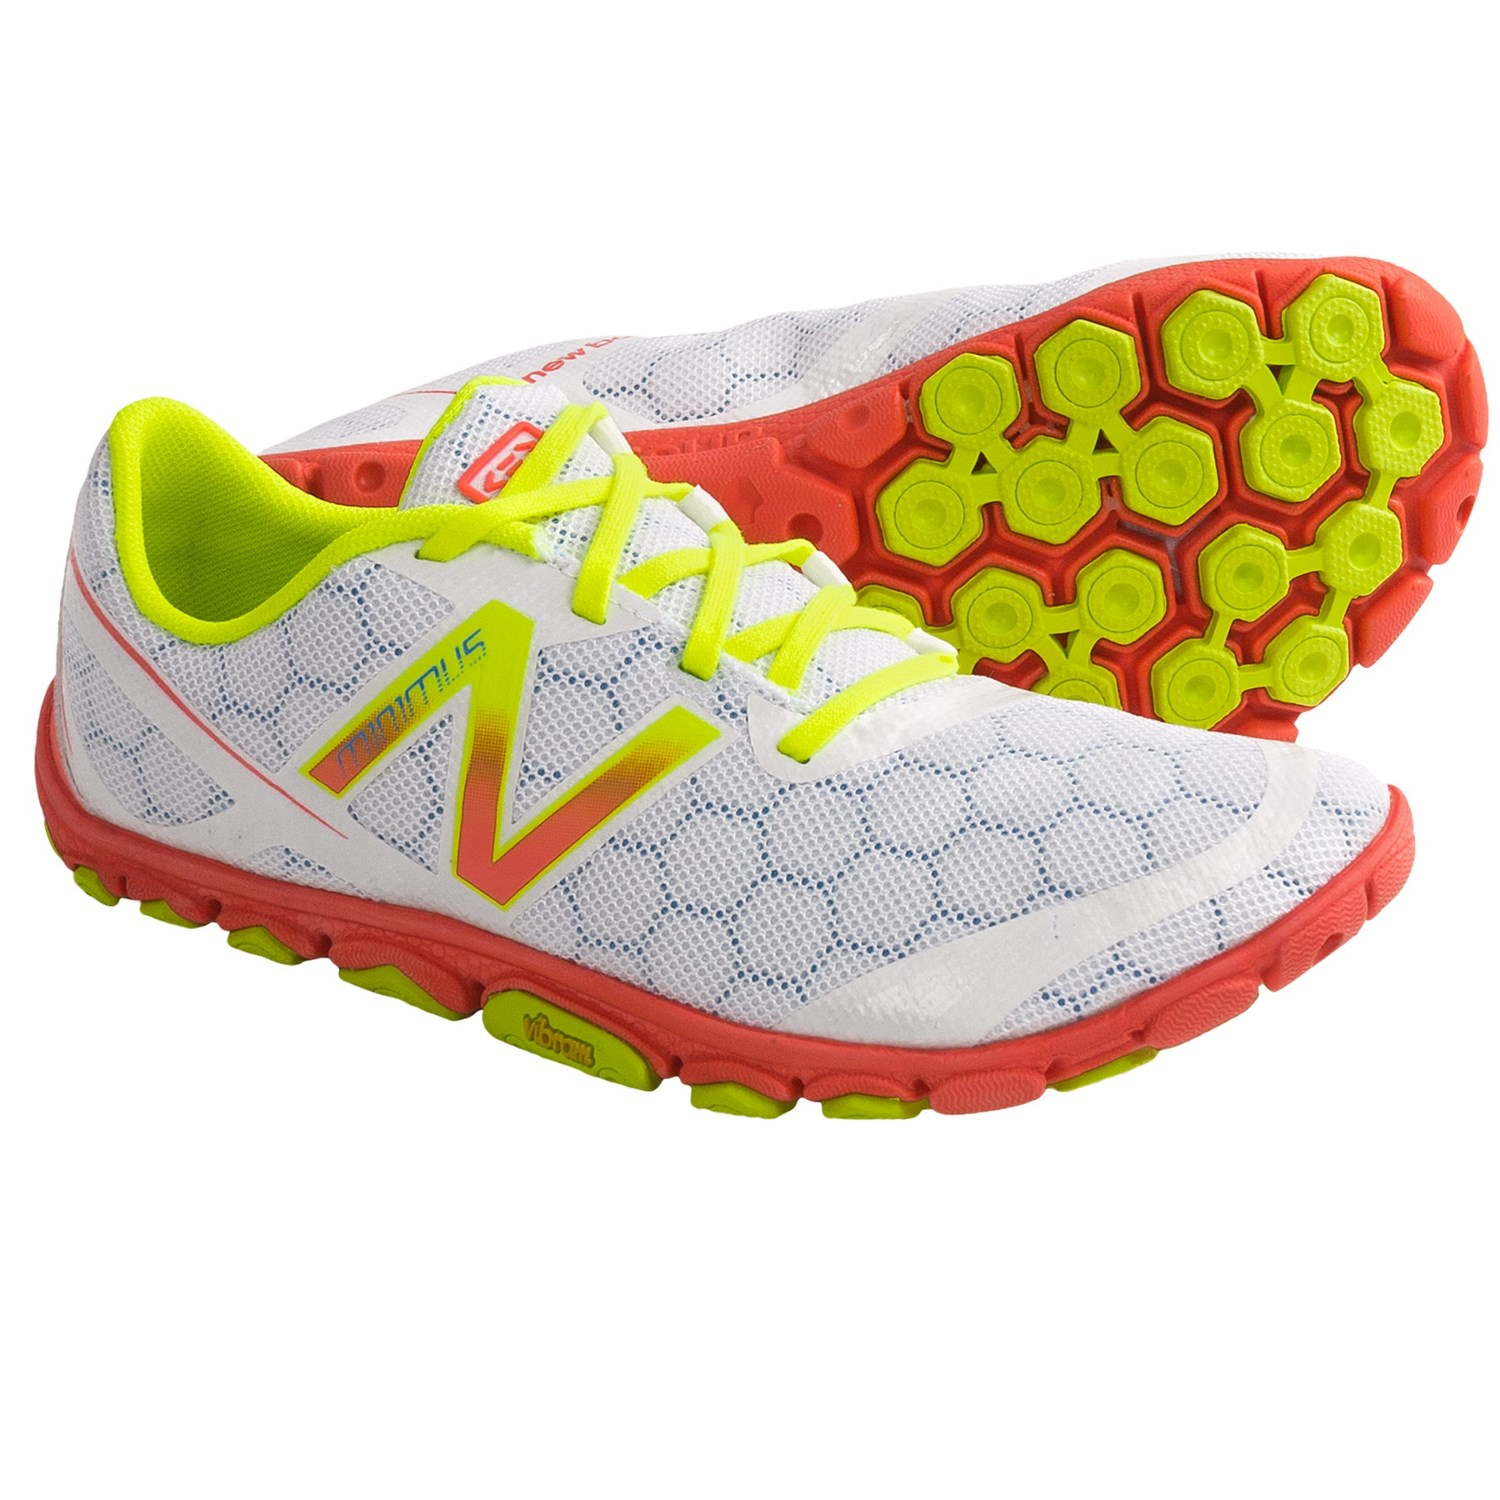 Customer Reviews of New Balance W890v4 Running Shoes (For Women